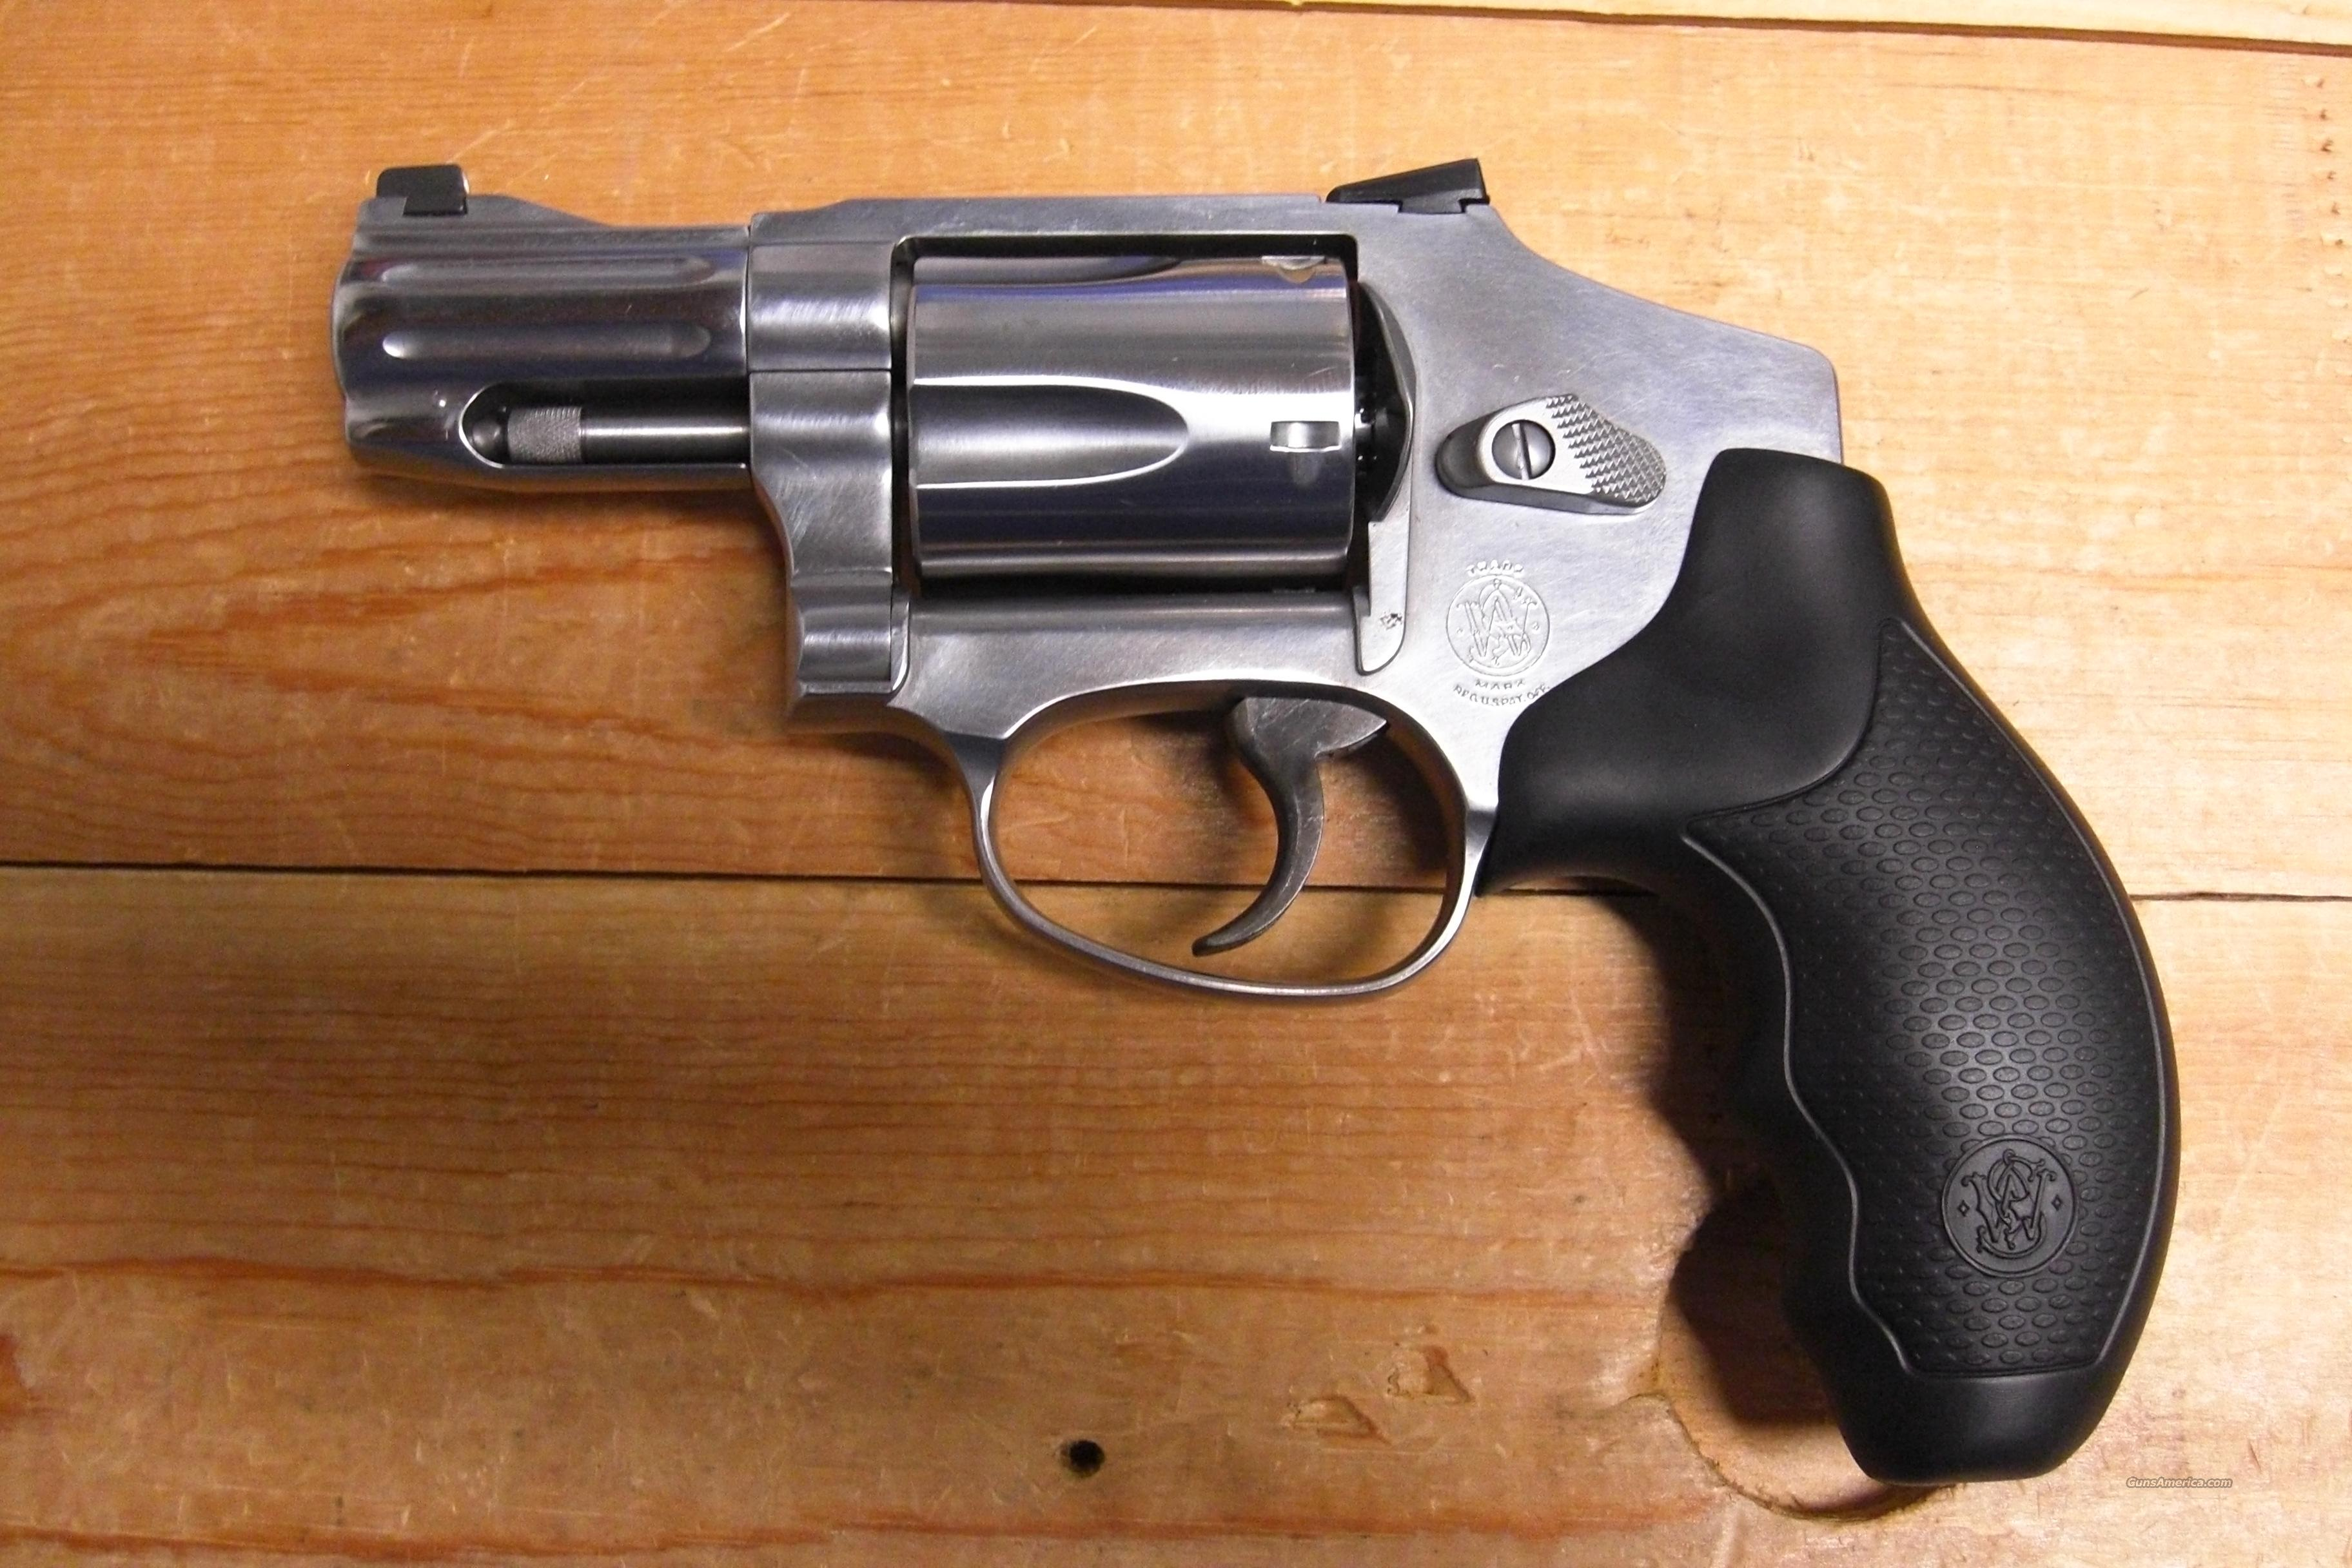 640-1   hammerless, stainless (.357 mag)  Guns > Pistols > Smith & Wesson Revolvers > Pocket Pistols